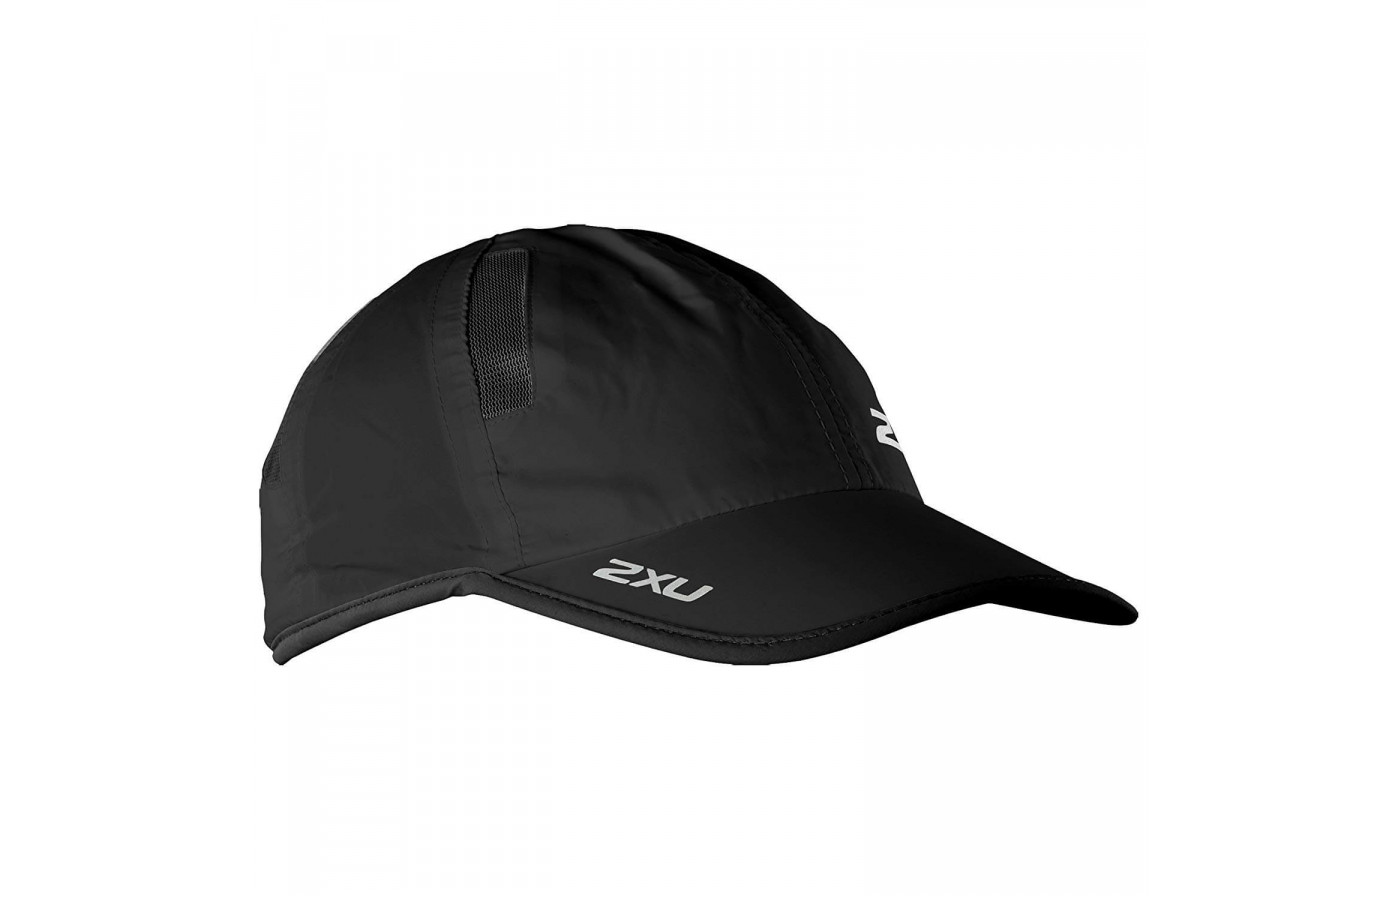 The 2XU Run Cap has vents on top to improve its breathability.